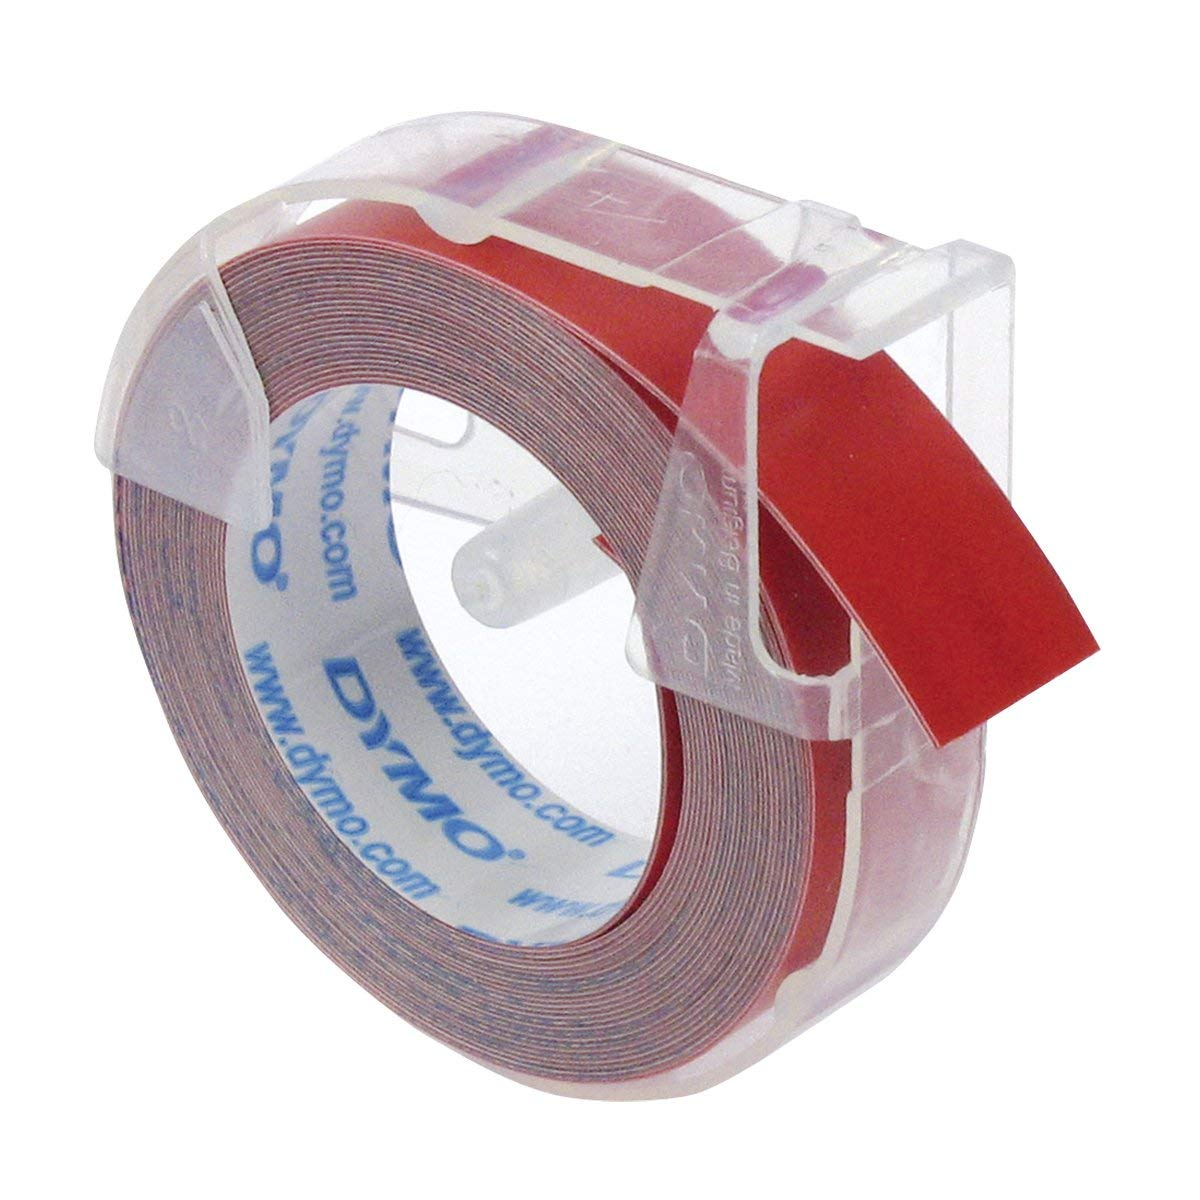 Dymo S0898150 (524702) 3D Embossing Tape 9mm x 3m - White On Red (box/10rolls)